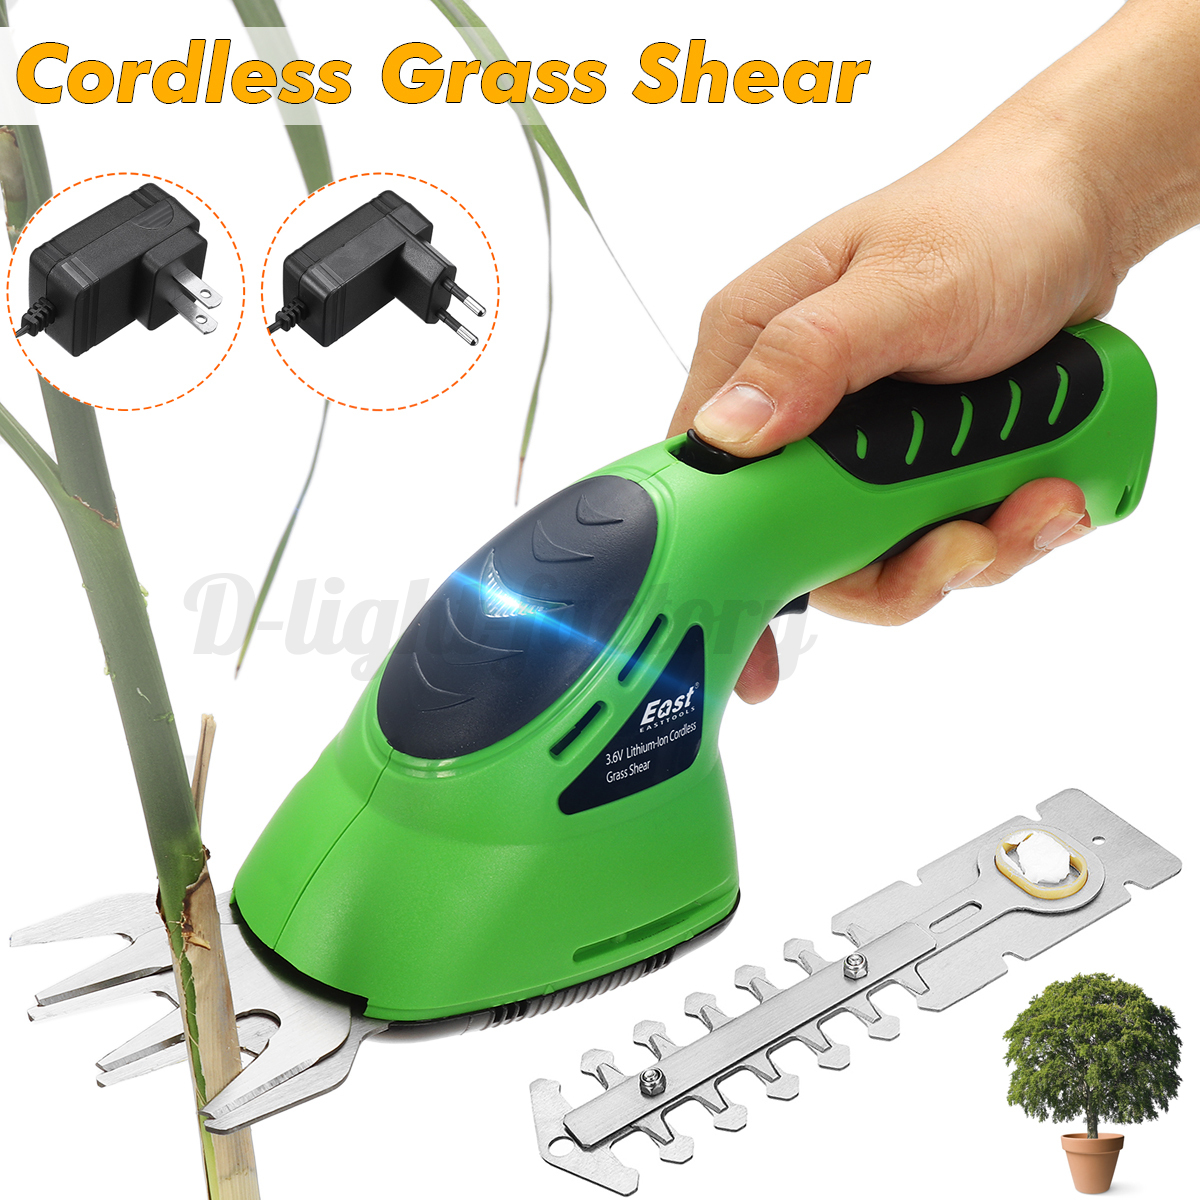 Cordless-Grass-Shear-Lawnmower-Garden-Pruning-Hedge-Trimmer-Rod-Wheel-Holder thumbnail 4